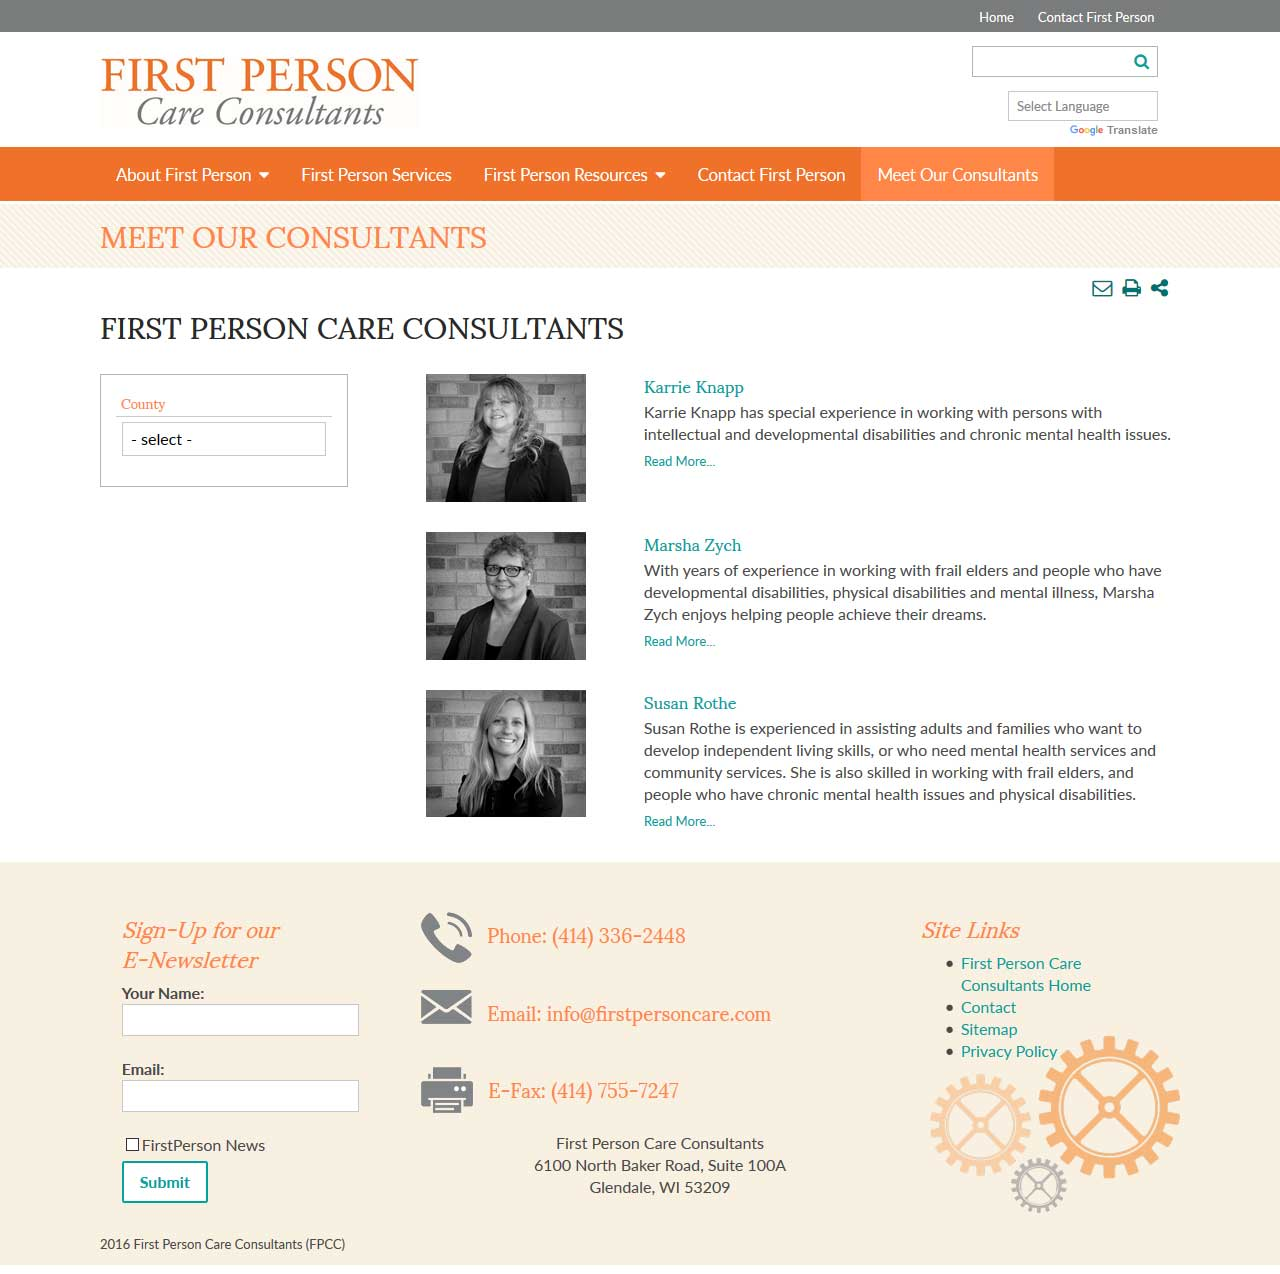 First Person Care Consultants - Screen Shot 6